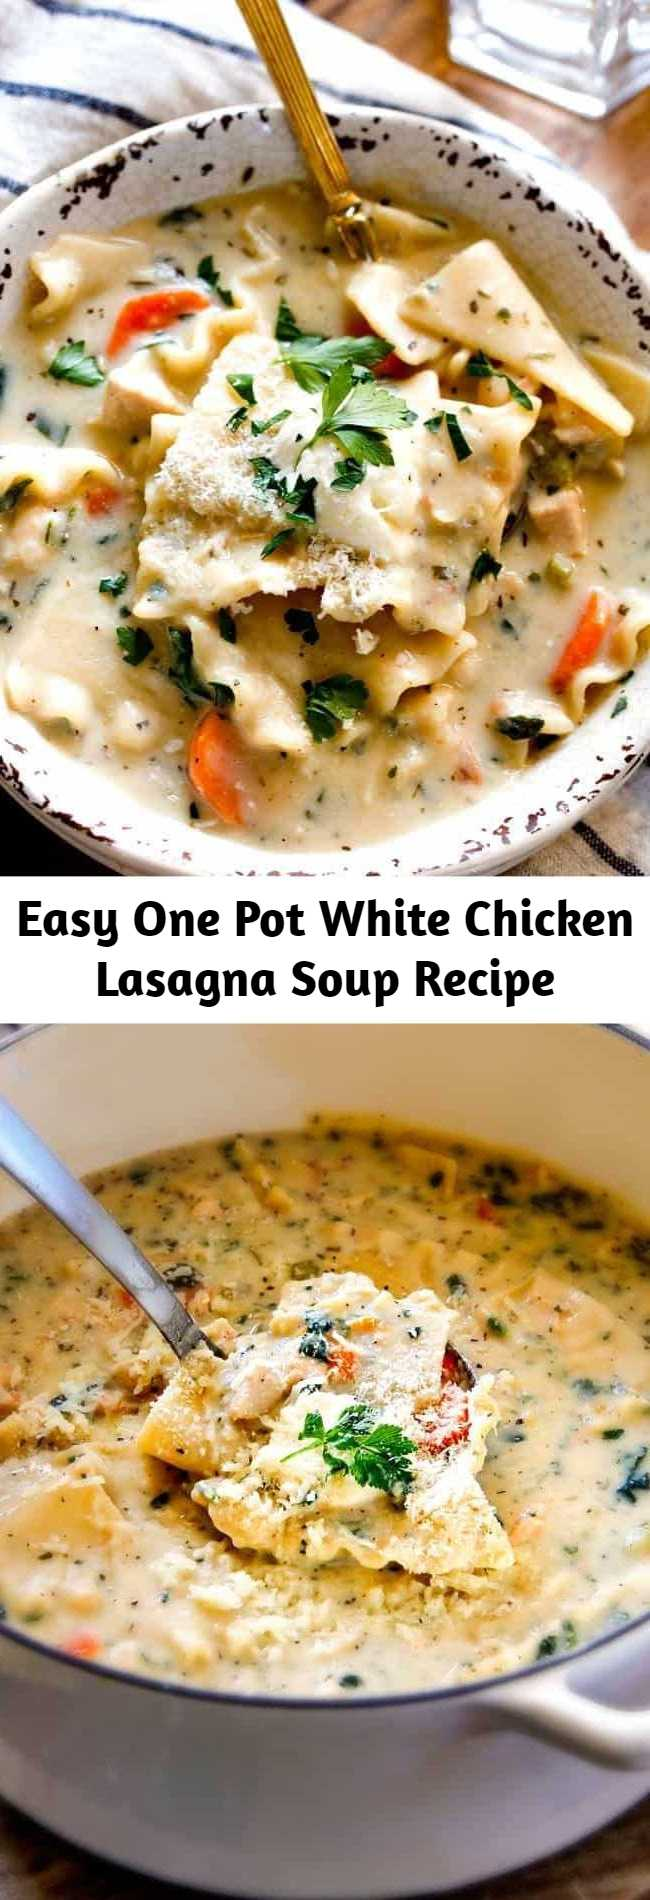 Easy One Pot White Chicken Lasagna Soup Recipe - This easy White Chicken Lasagna Soup tastes just like white chicken lasagna with cheesy layers of noodles smothered in velvety Italian spiced Parmesan infused sauce without all the layering or dishes! Simply saute chicken and veggies and dump in all ingredients and simmer away for a pot of velvety, slurpilicoius flavor!